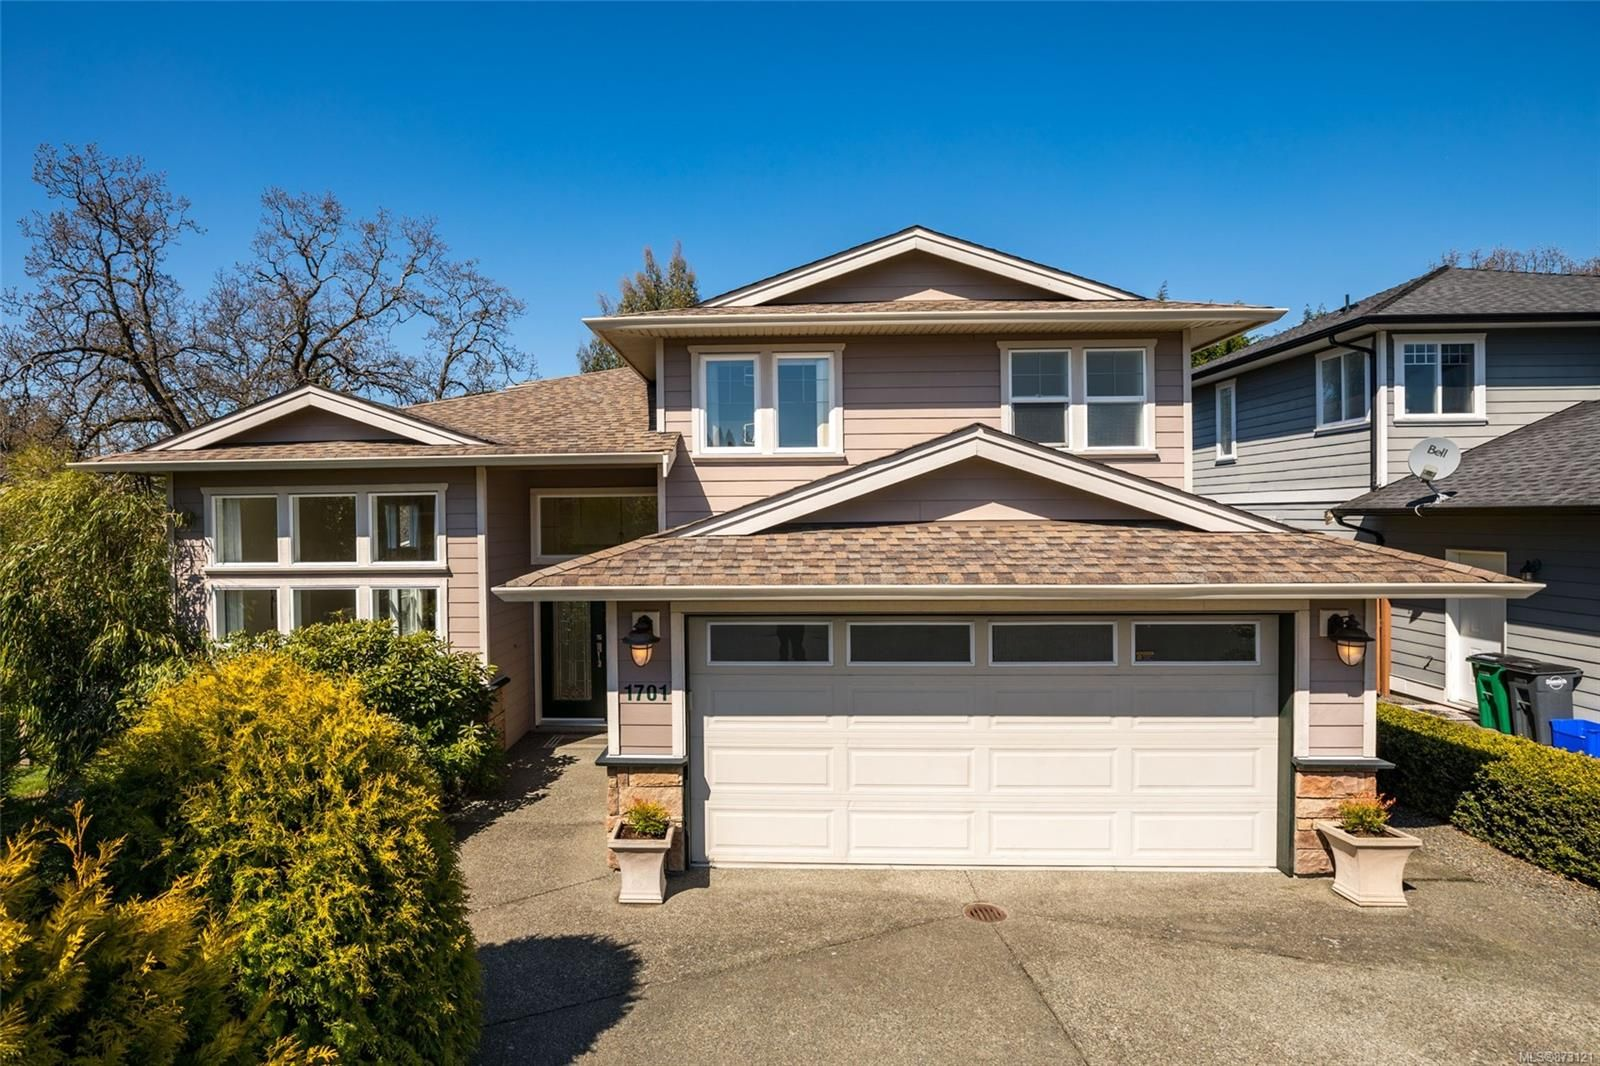 Main Photo: 1701 Mamich Cir in : SE Gordon Head House for sale (Saanich East)  : MLS®# 873121